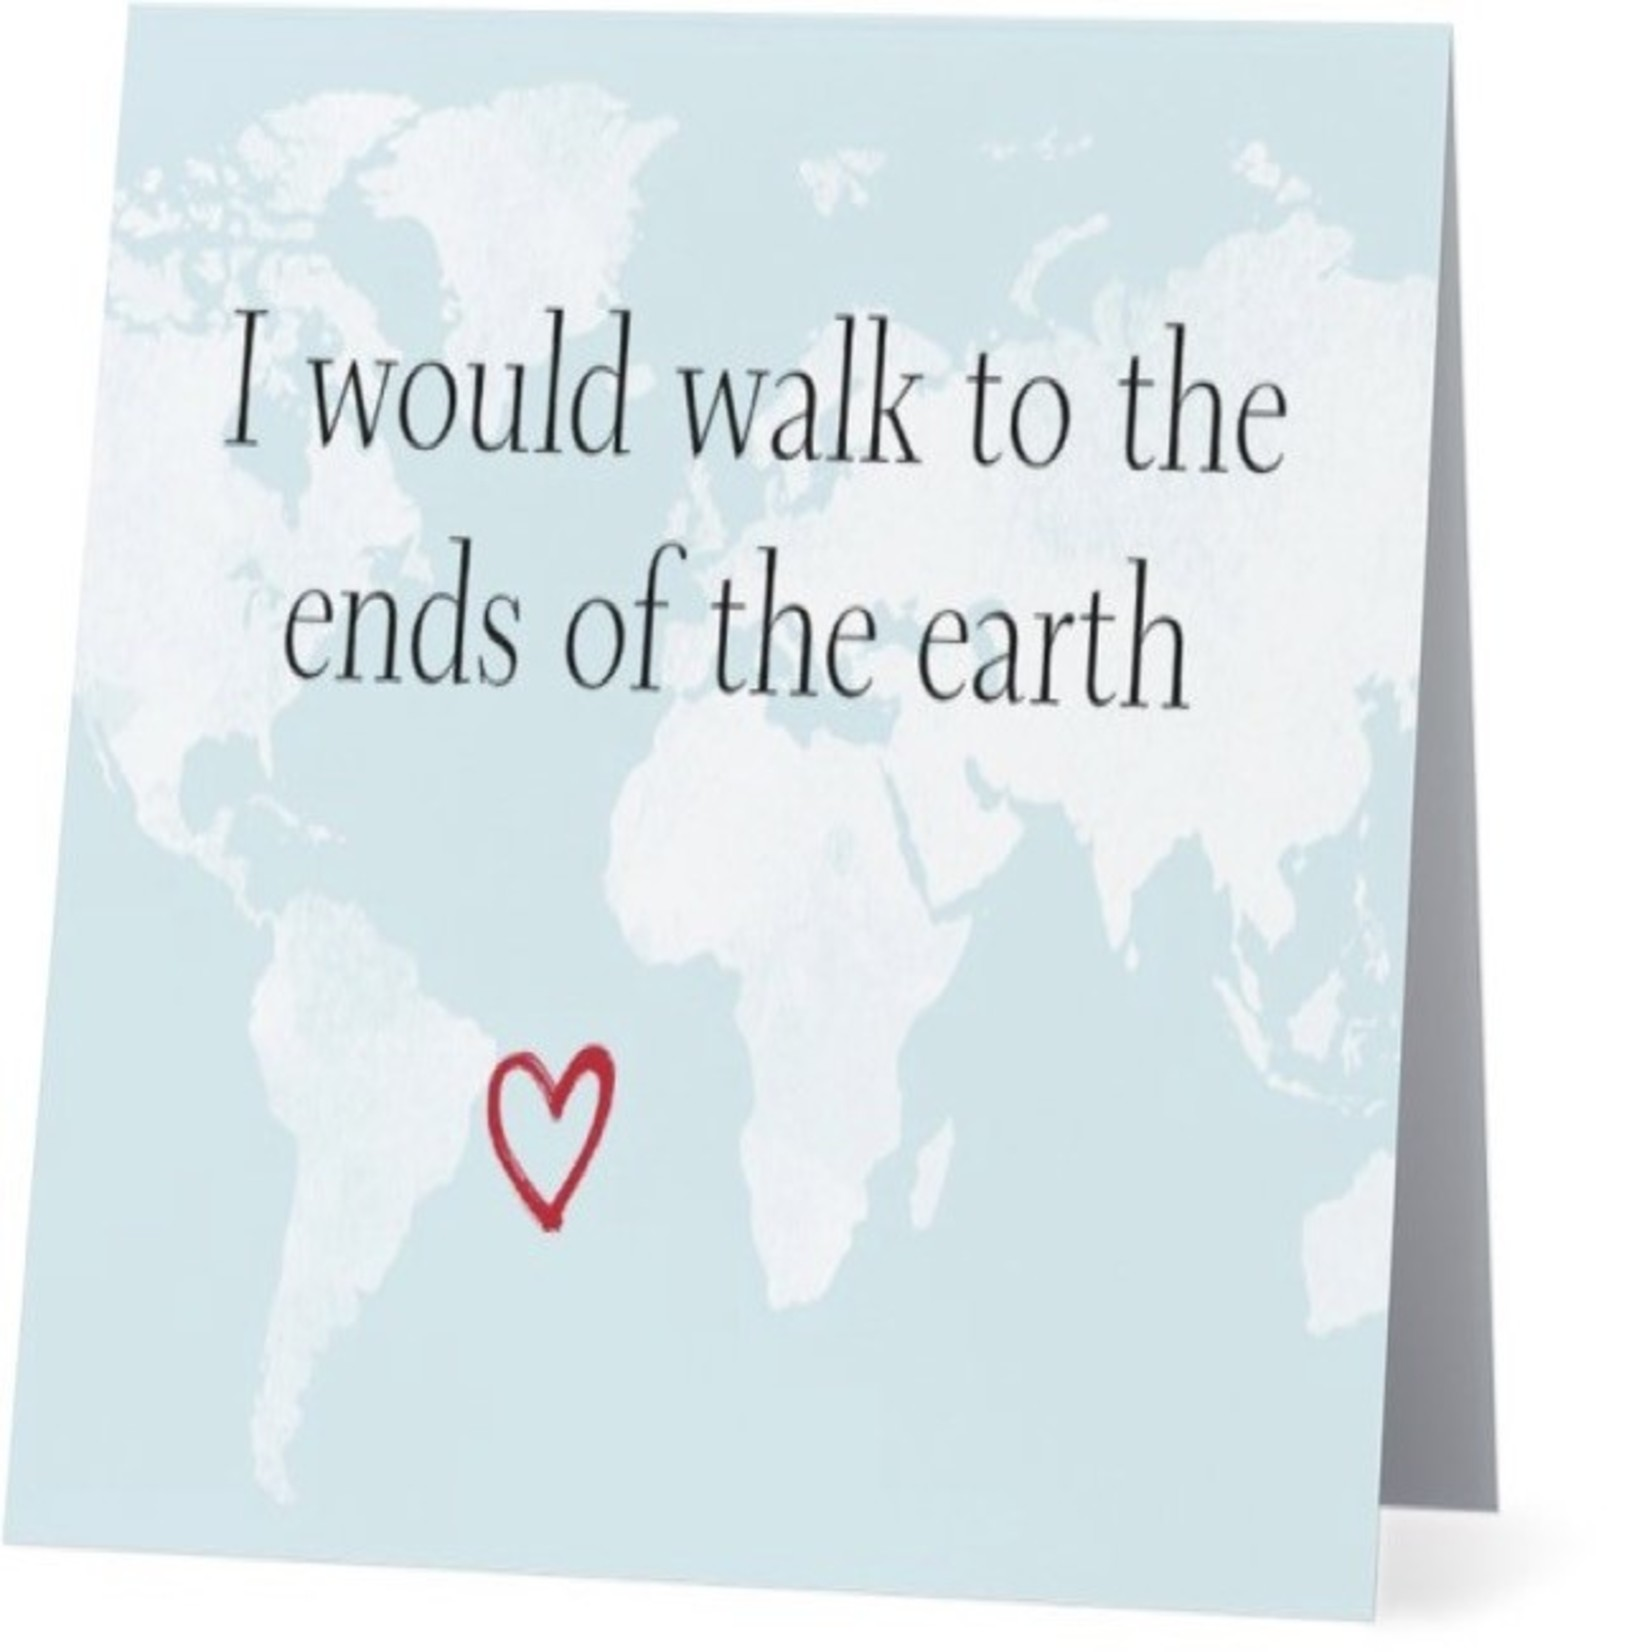 Bad Annie's Card #009 - Walk To End Of The Earth